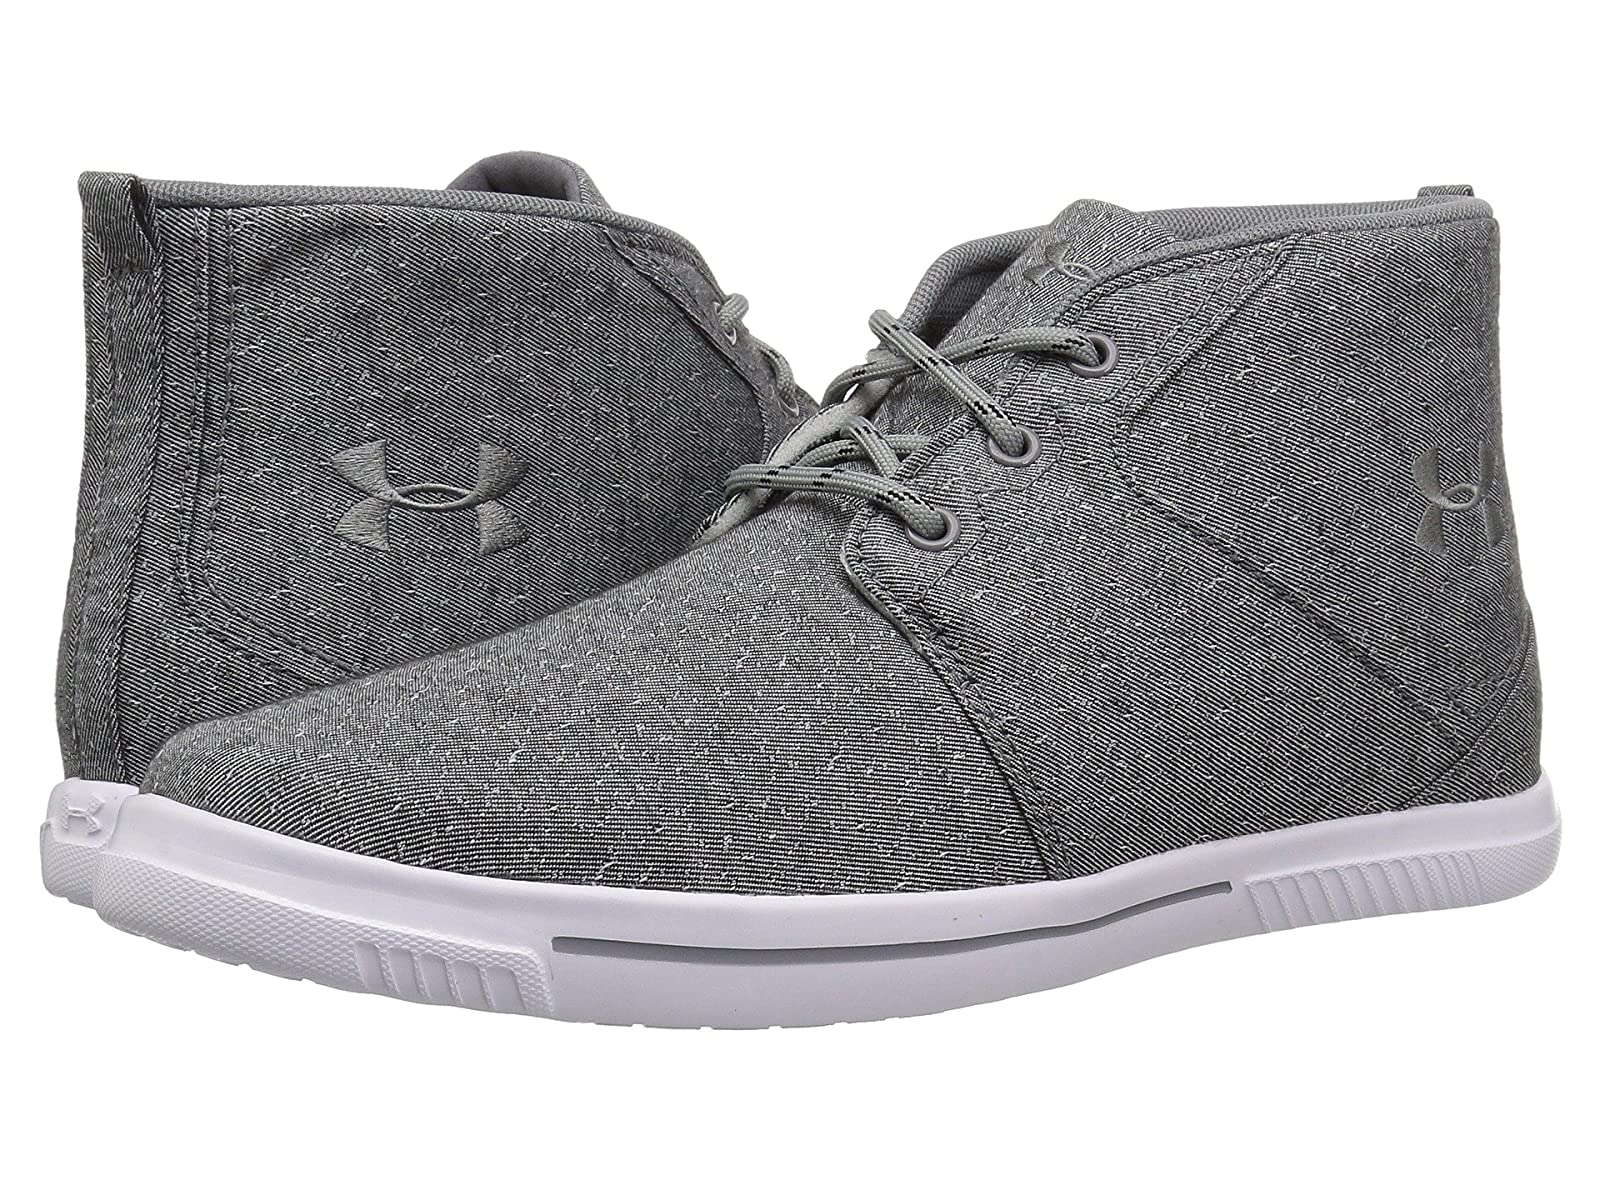 Under Armour Street Encounter Mid IVCheap and distinctive eye-catching shoes